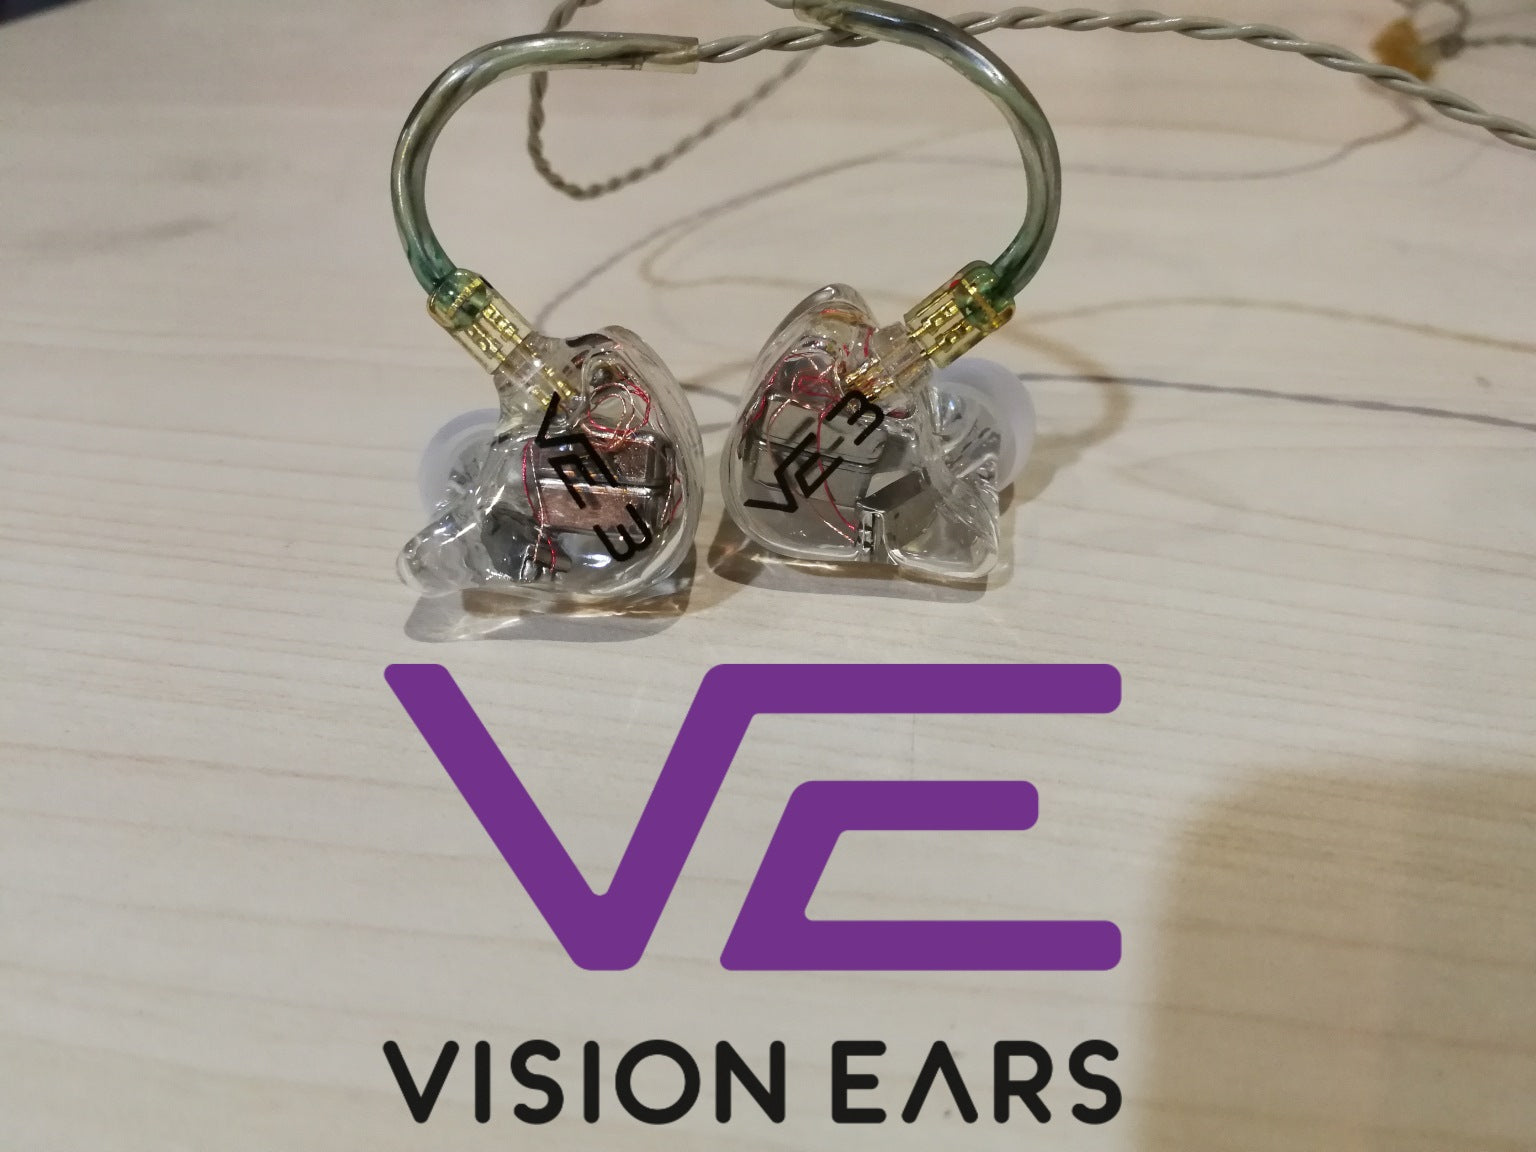 Vision Ears VE3 Demo (SS15) - Jaben - The Little Headphone Store